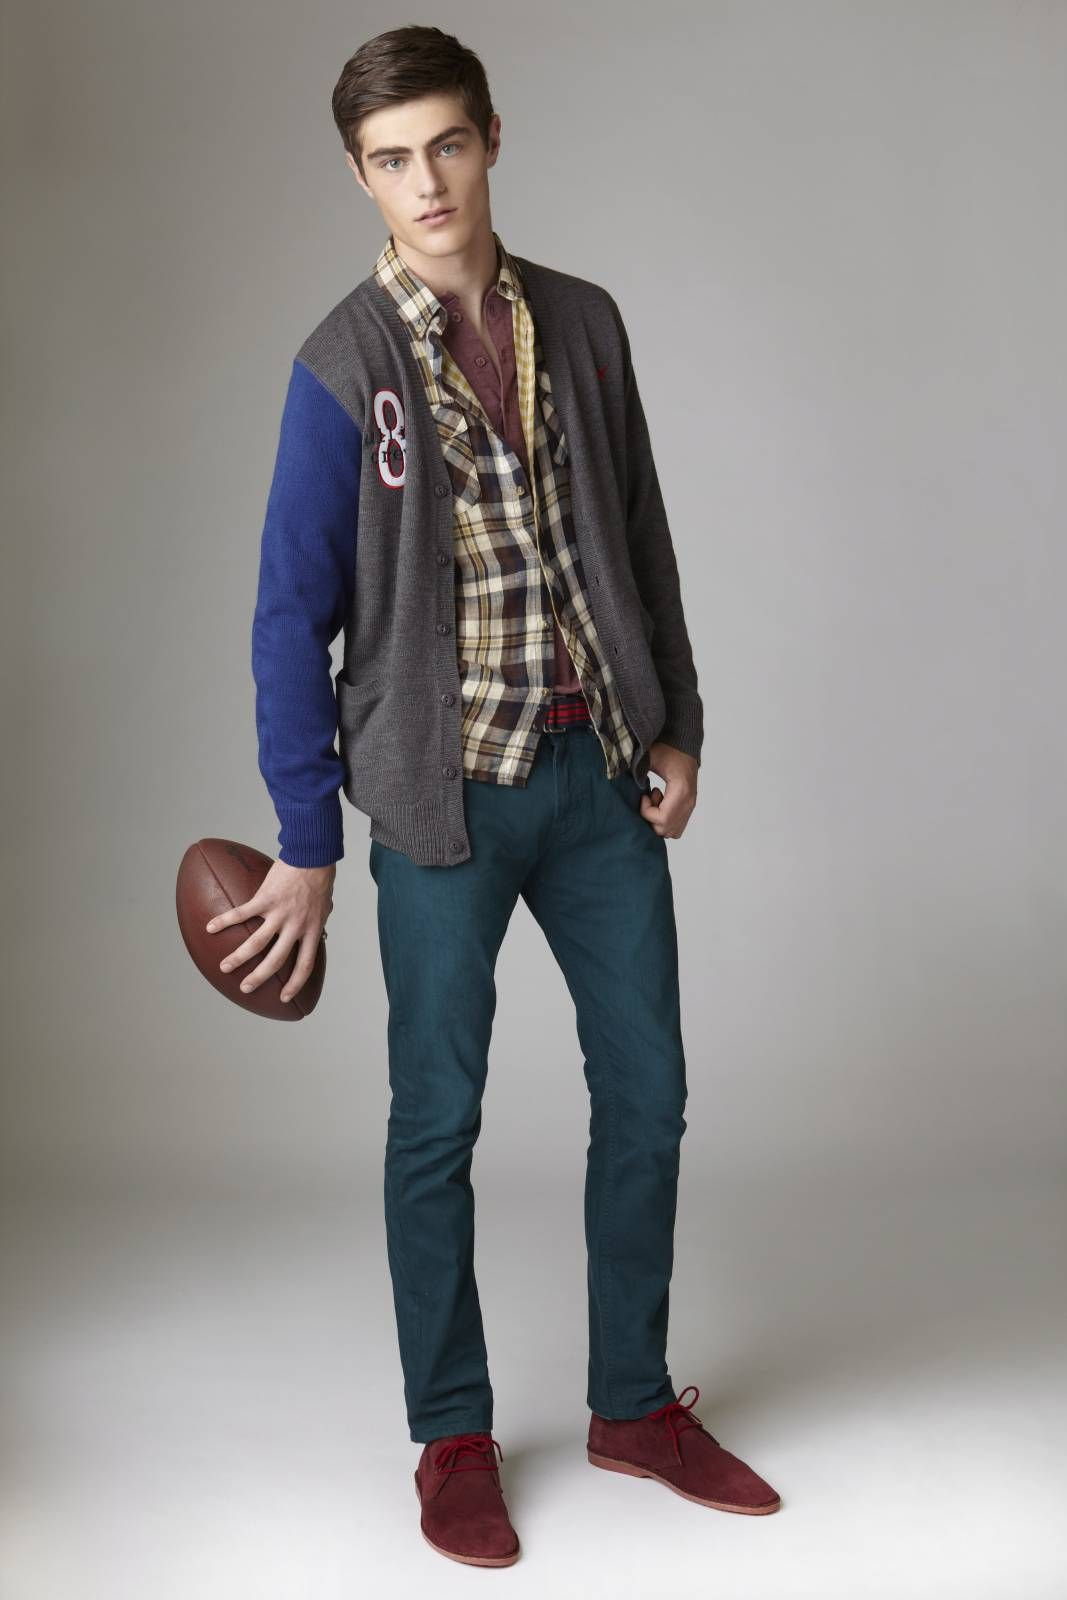 Pin On Male Teen Clothing Ideas